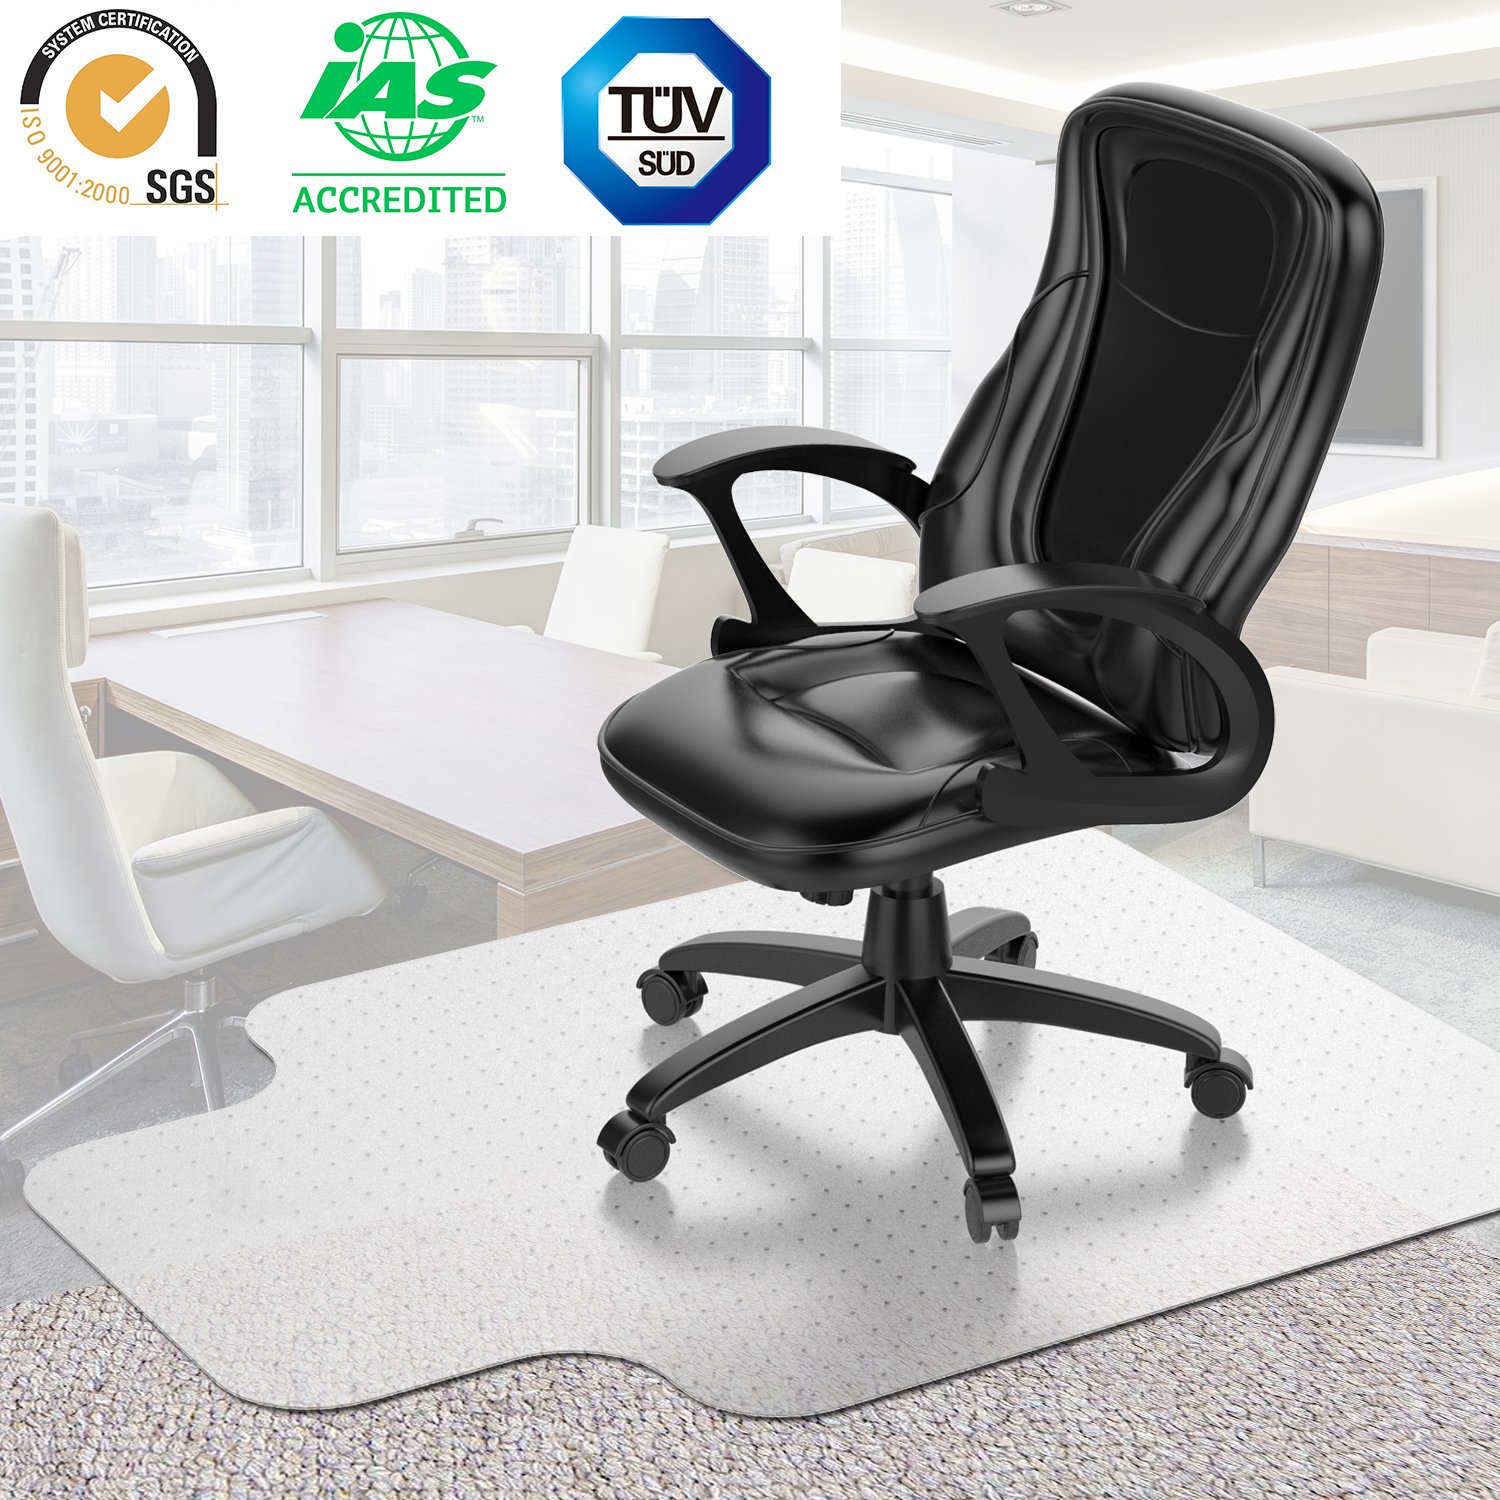 Under Desk Chair Mat (Transparent) Large, Vinyl Floor Protector For  Low Pile Carpets,Non Slip Bottom, Heavy Duty | Home, Office, Computer